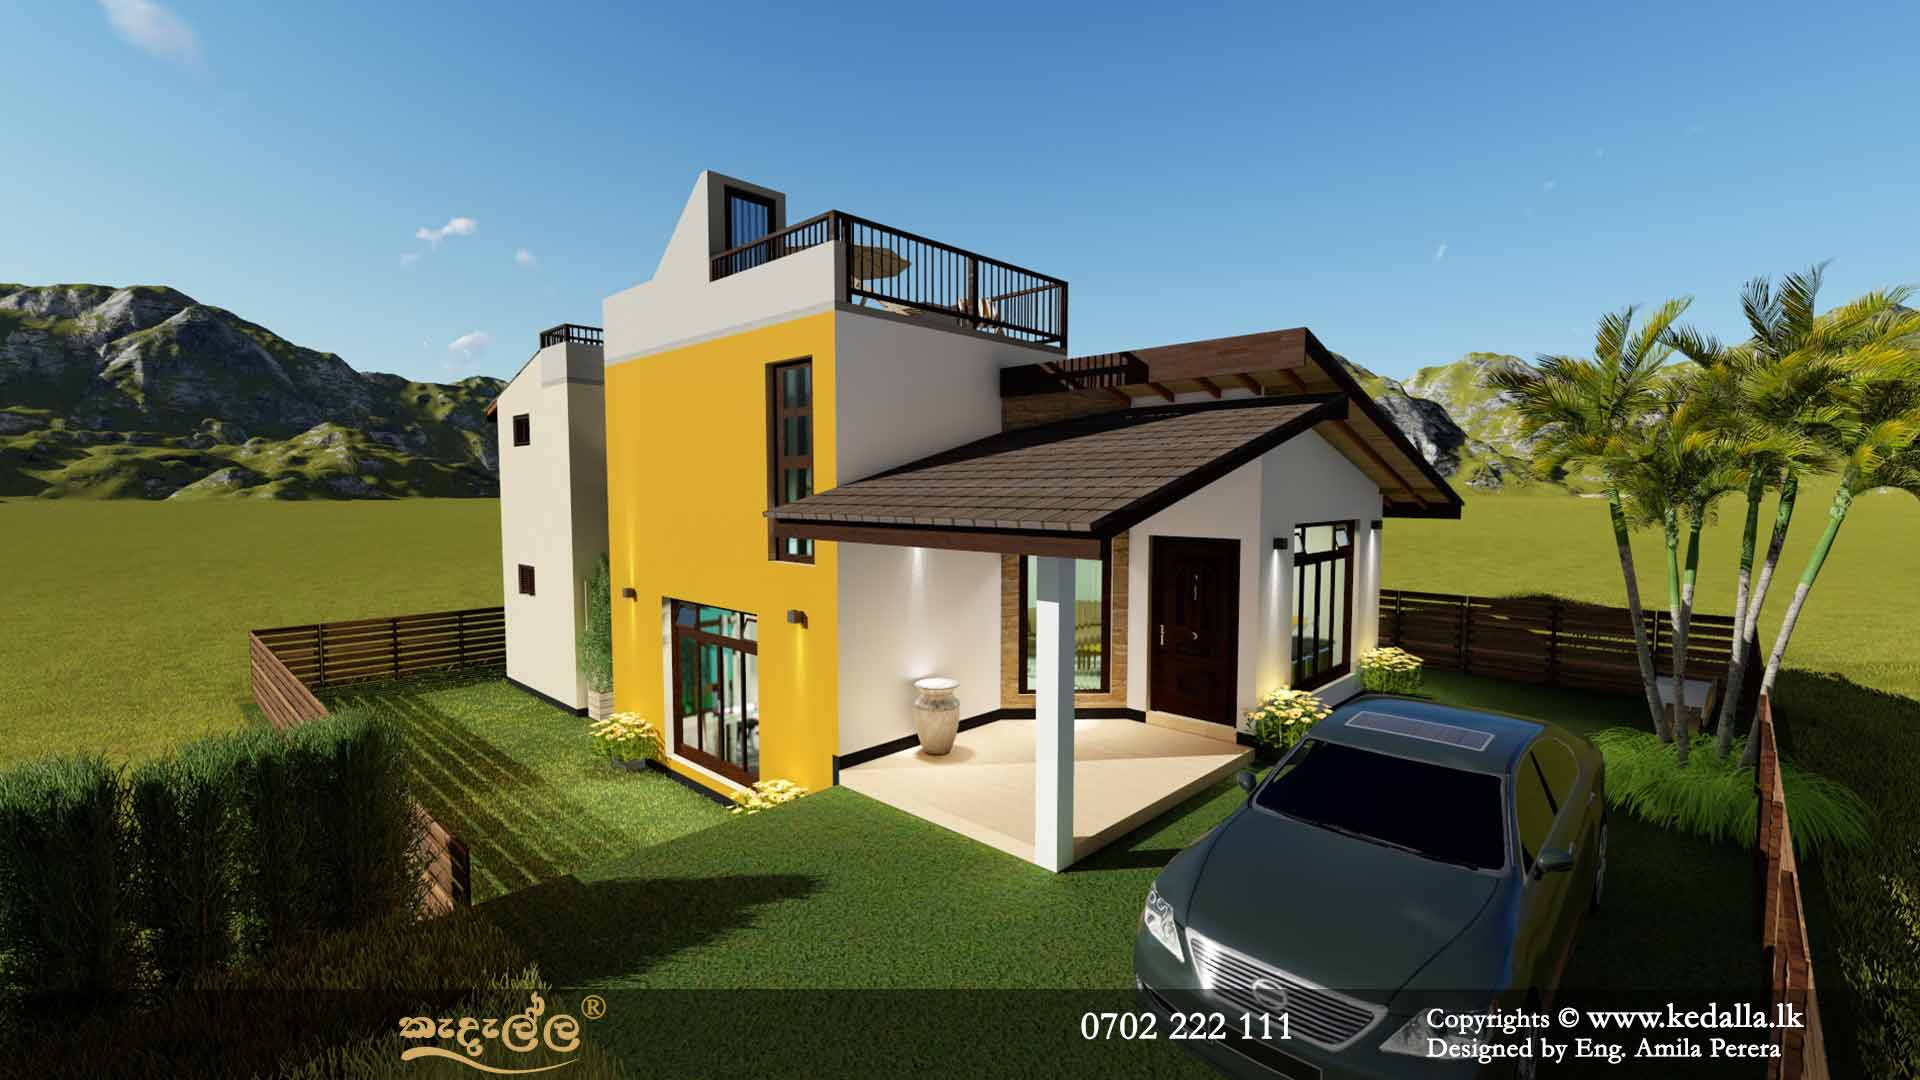 5 Bedroom Box Model House Designs done by Top Architects for Sale in Sri Lanka